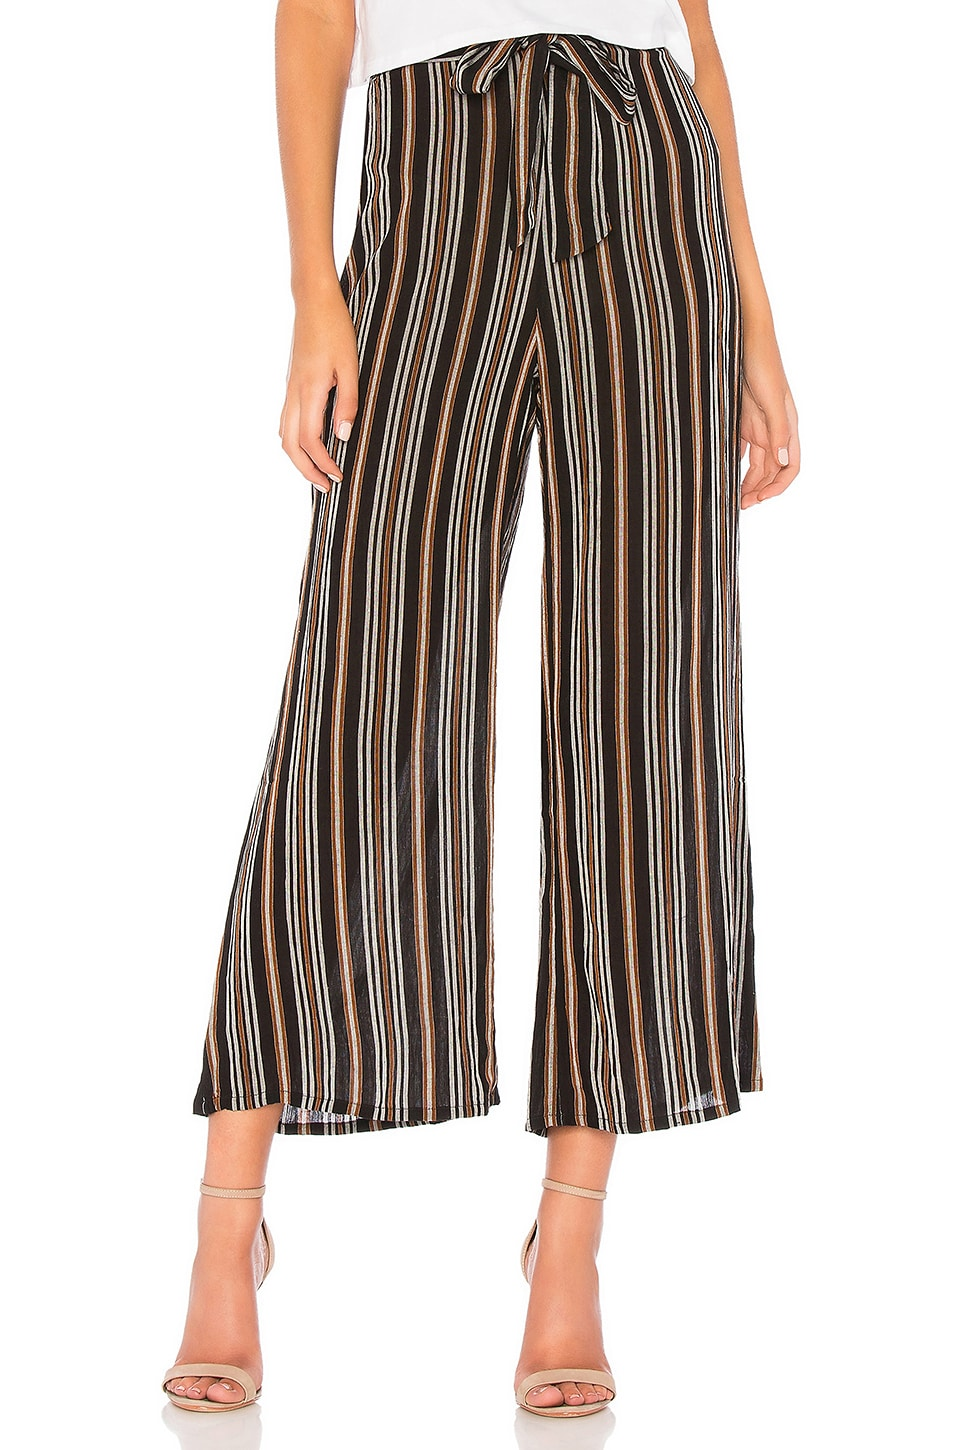 EVEN TIDES PANT from REVOLVE